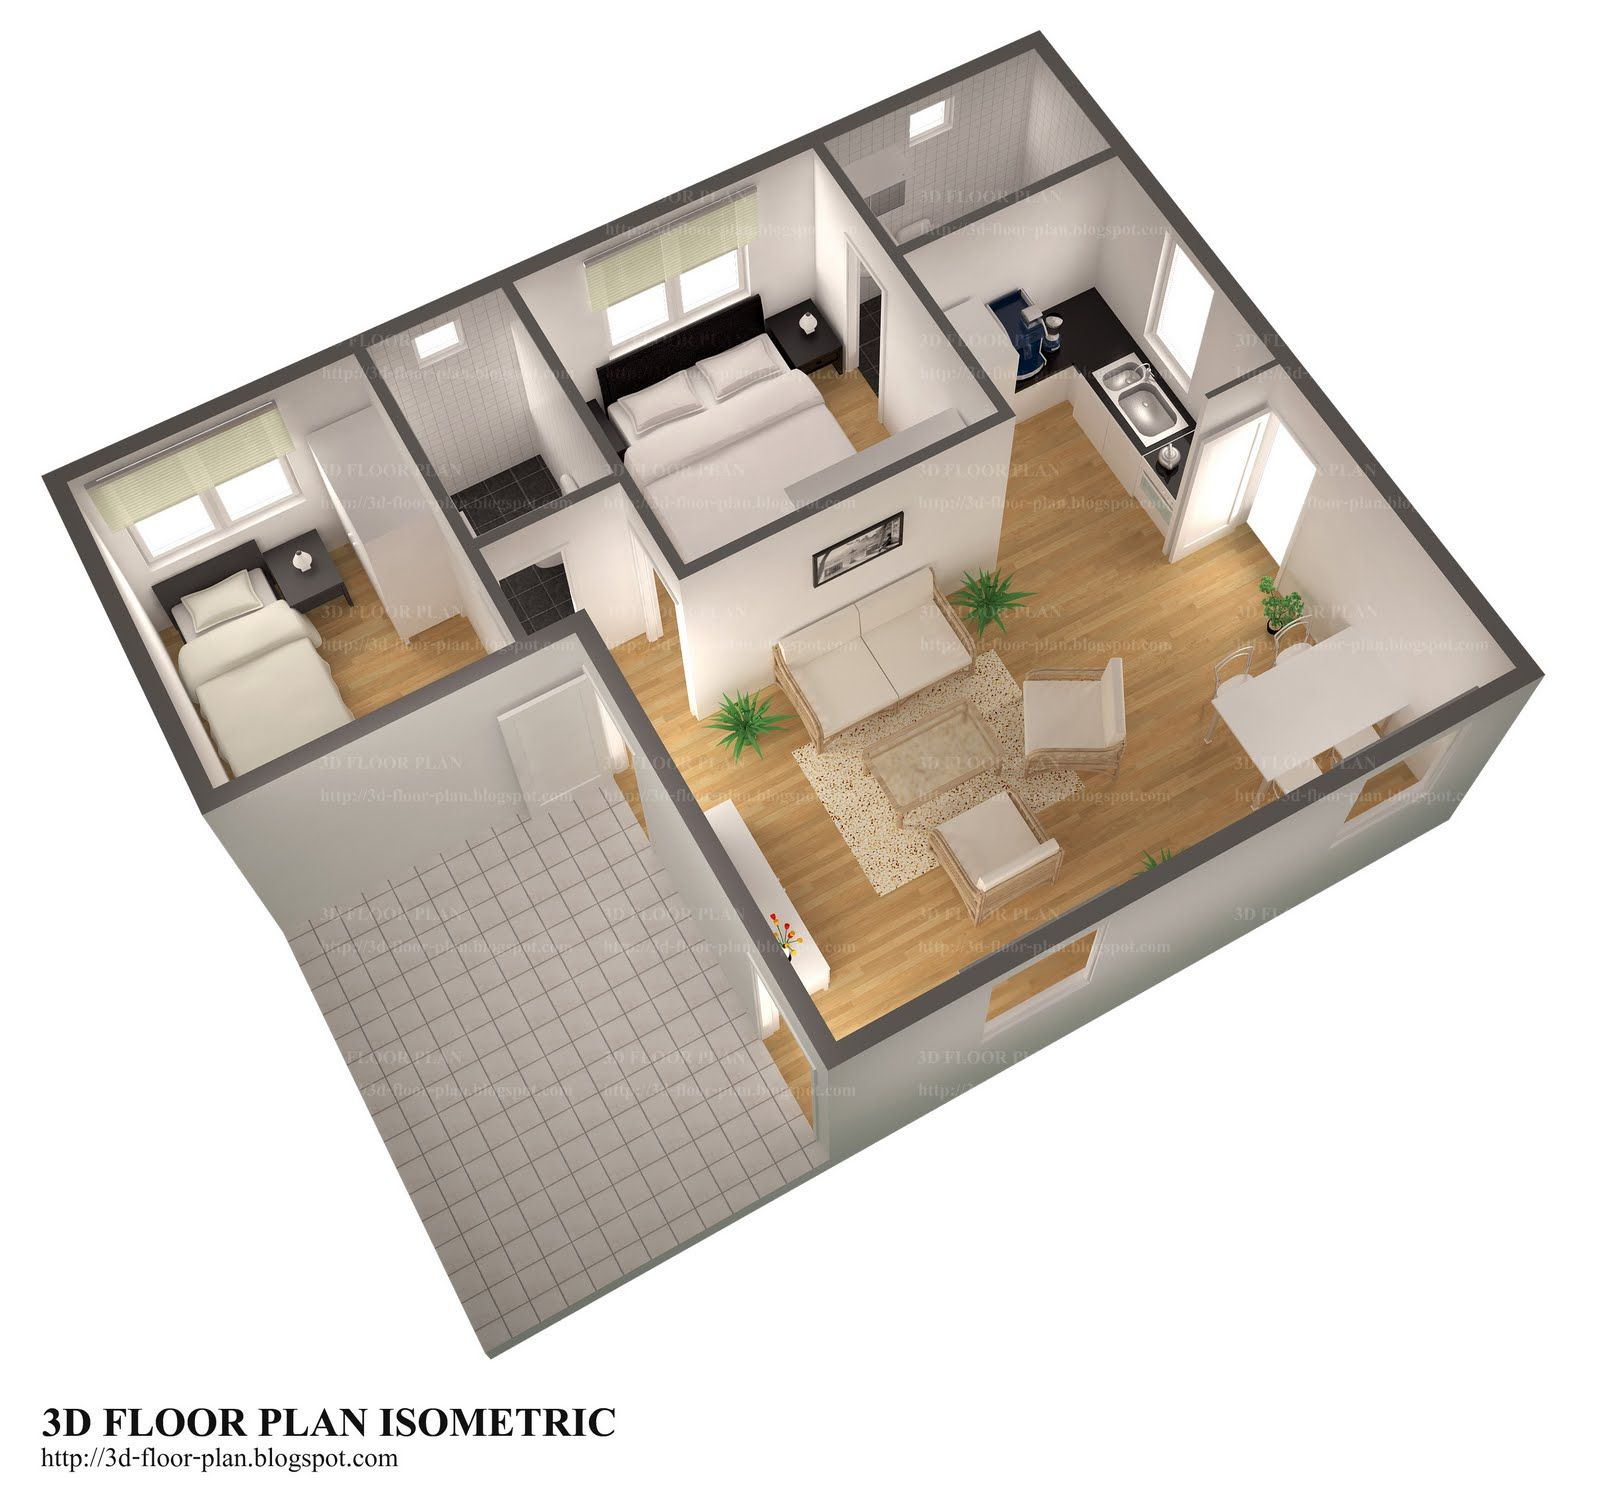 3d Floor Plans 3d Floor Plan Isometric Small House Floor Plan - Planos-de-casas-pequeas